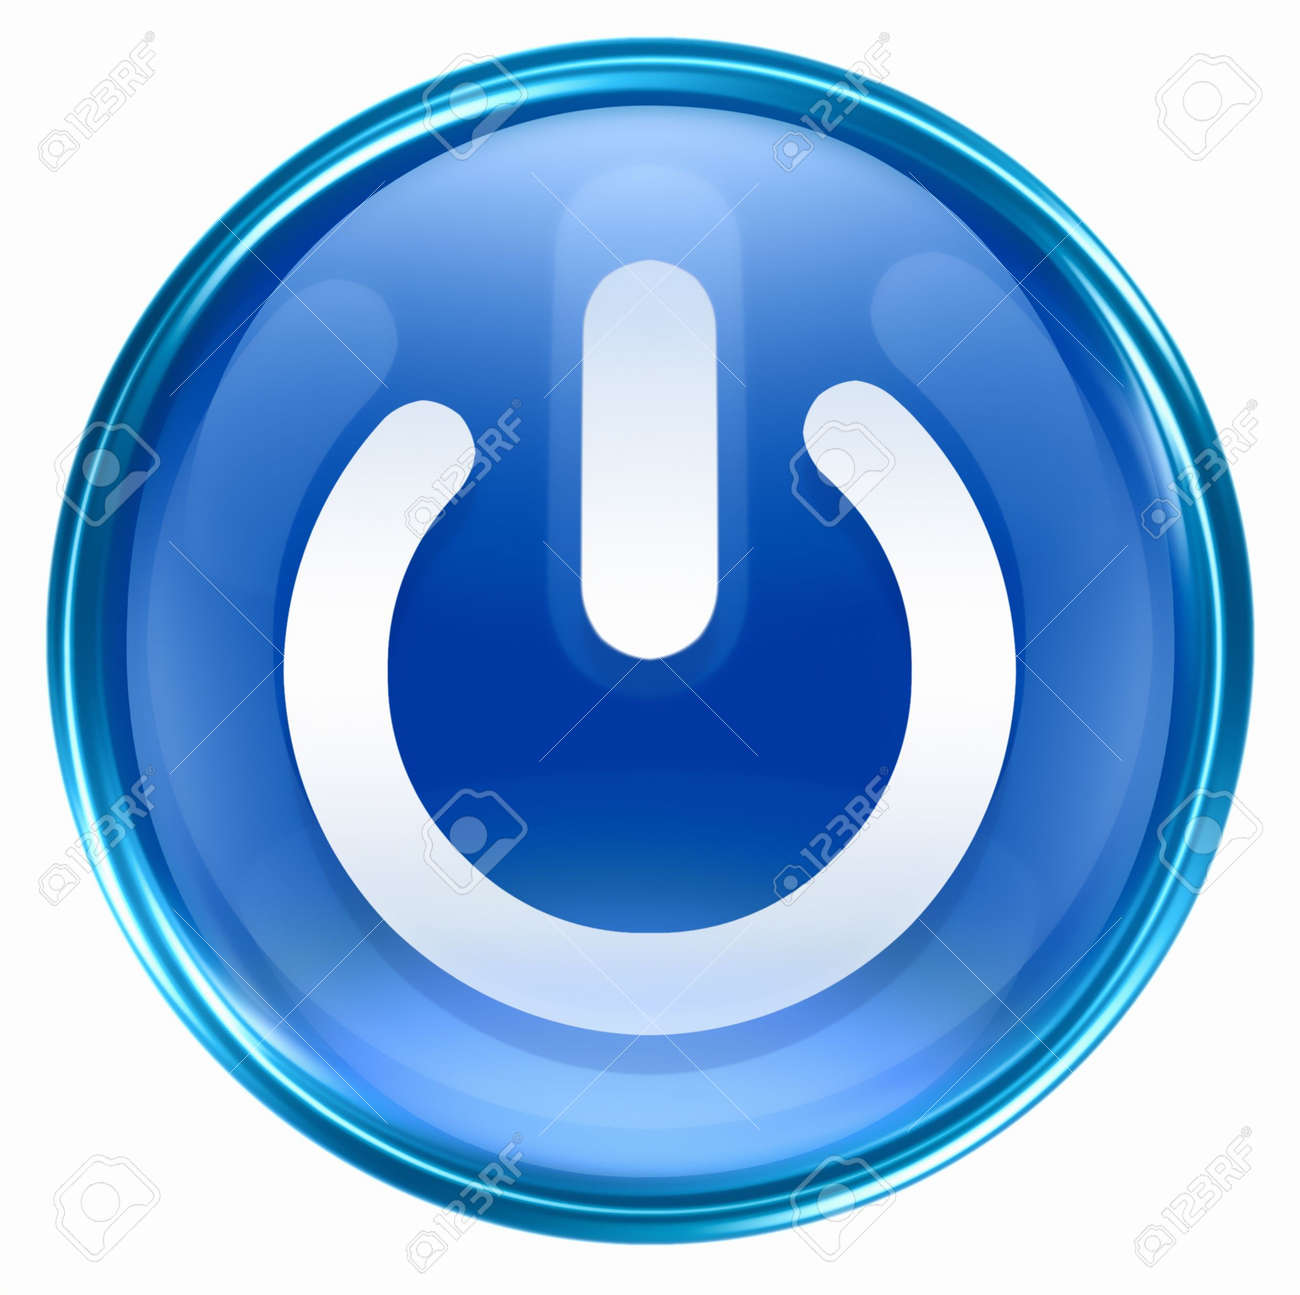 power button blue, isolated on white background. Stock Photo - 2562685